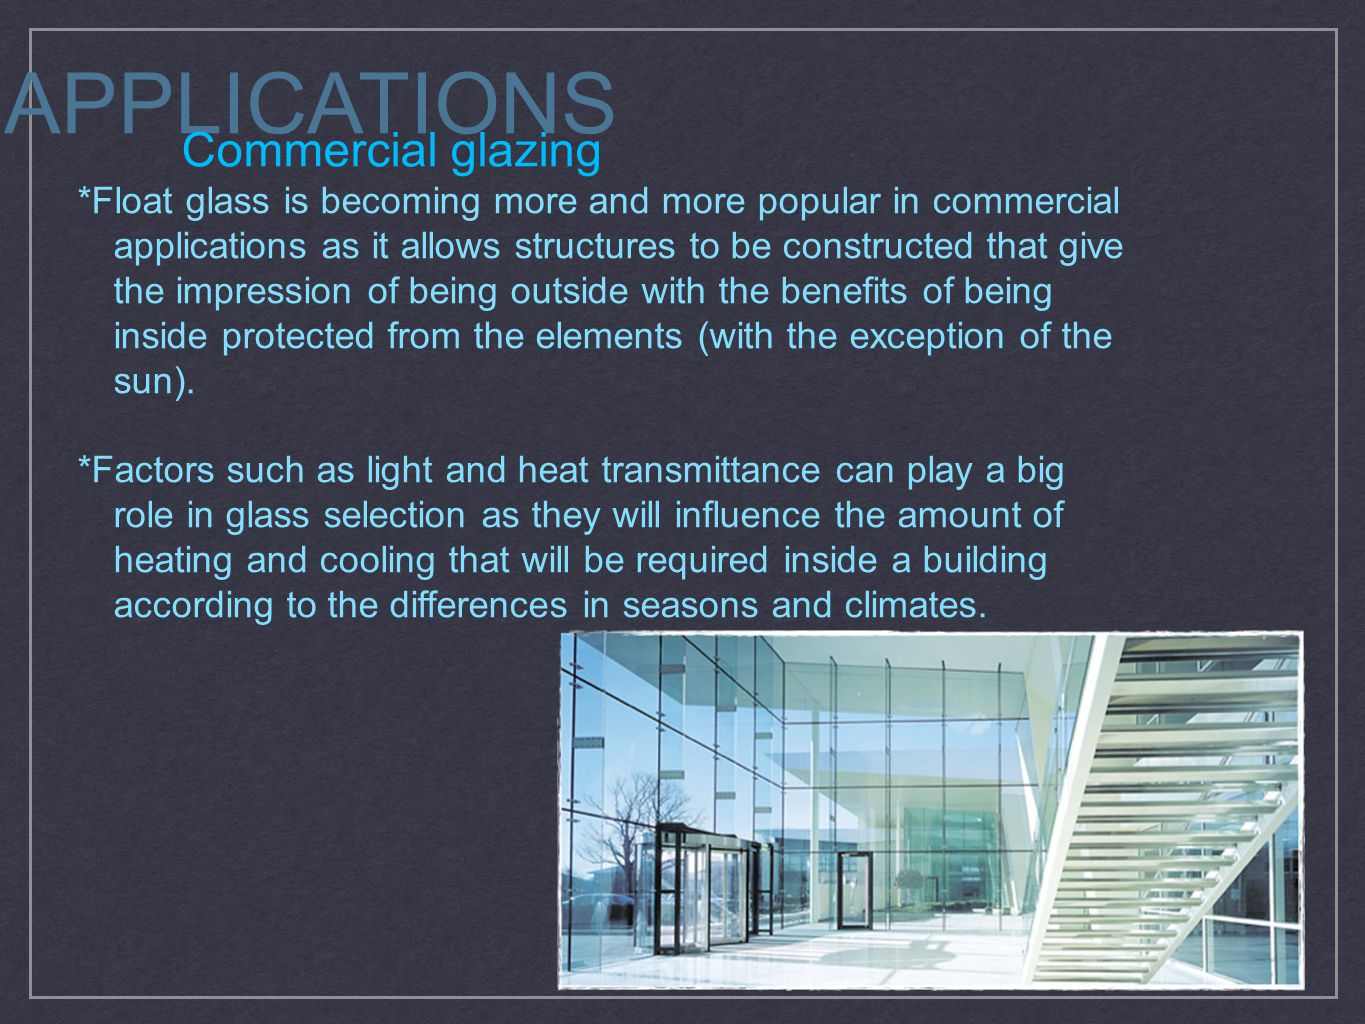 APPLICATIONS Commercial glazing *Float glass is becoming more and more popular in commercial applications as it allows structures to be constructed that give the impression of being outside with the benefits of being inside protected from the elements (with the exception of the sun).